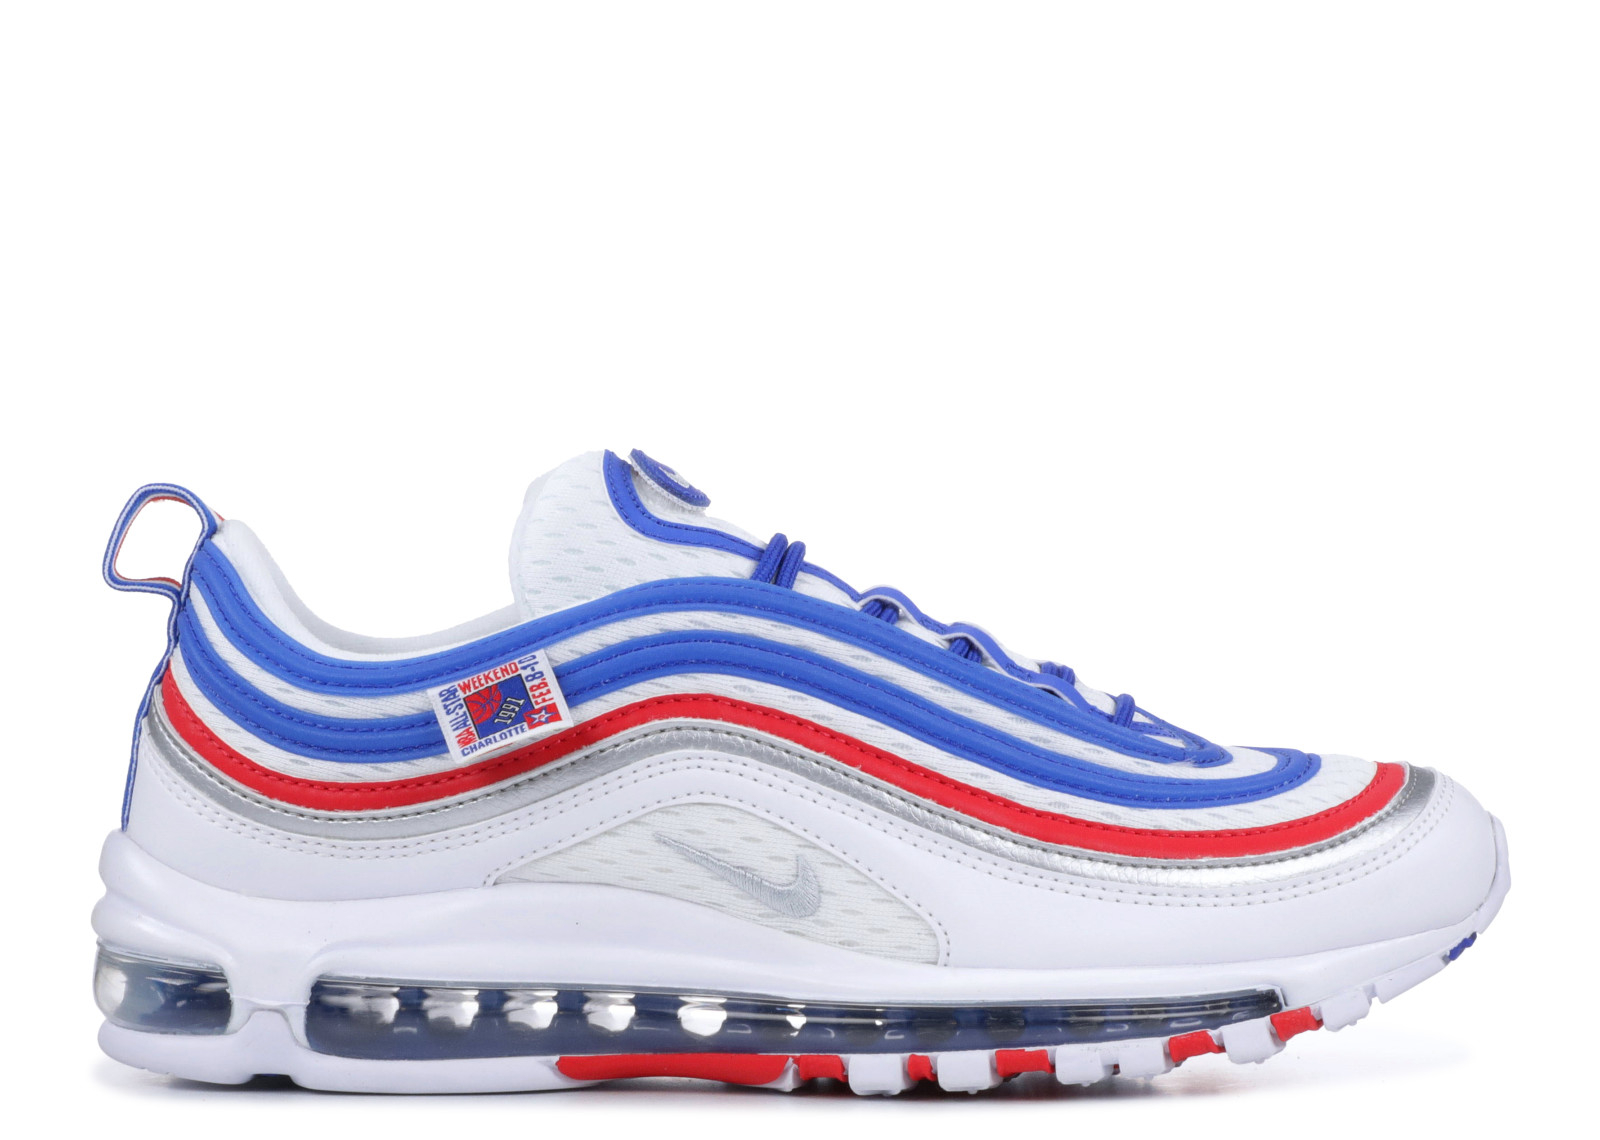 SNEAKERS NIKE AIR MAX 97 PEARL WHITE/RED/BLUE 921826/404